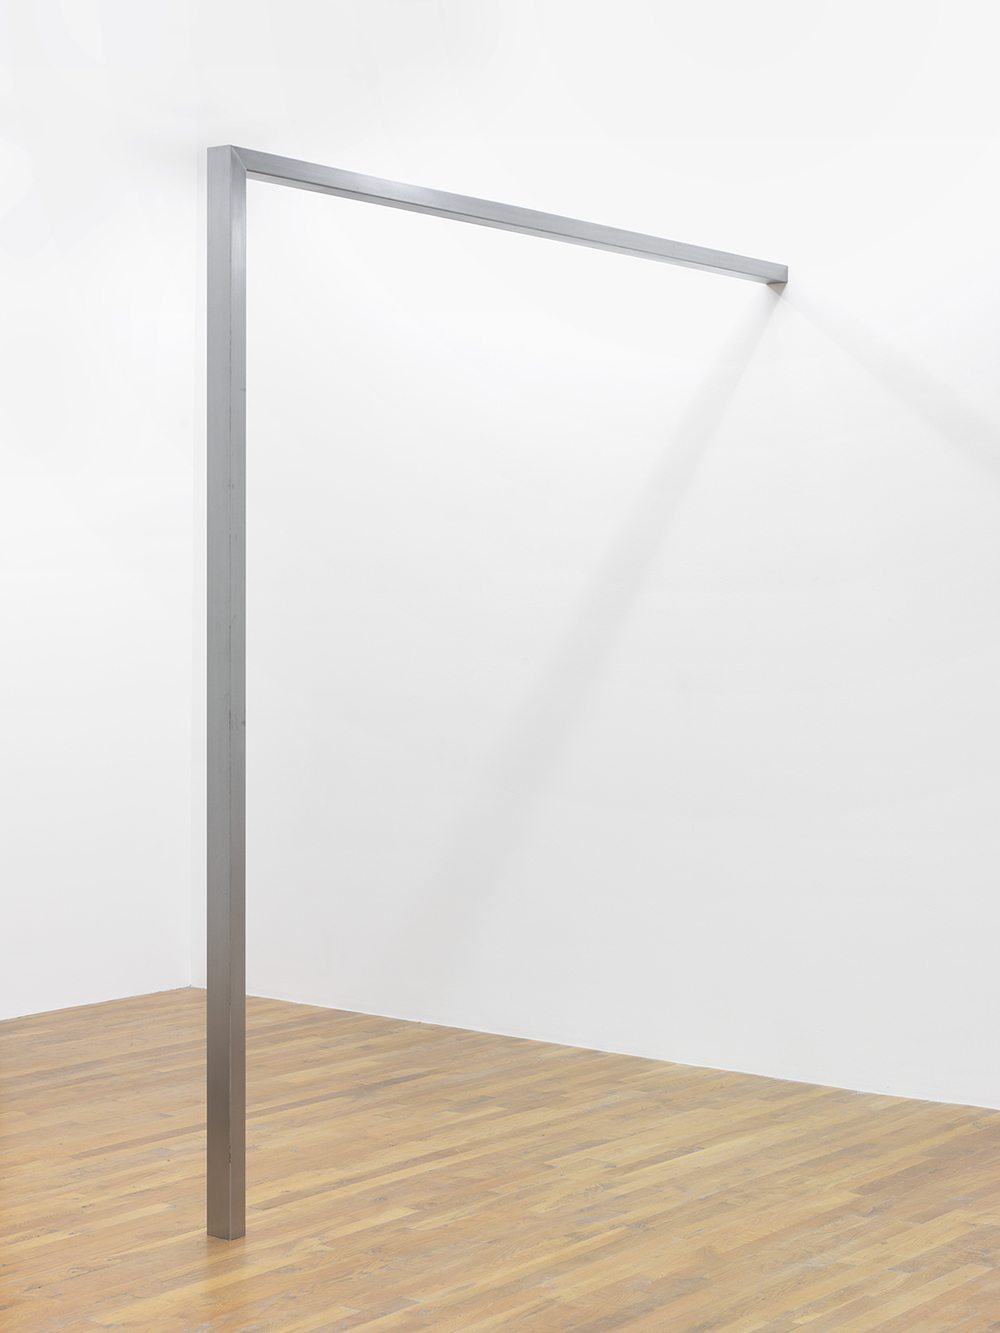 Pole   2014  Steel  95.5 x 91.5 x 3 inches